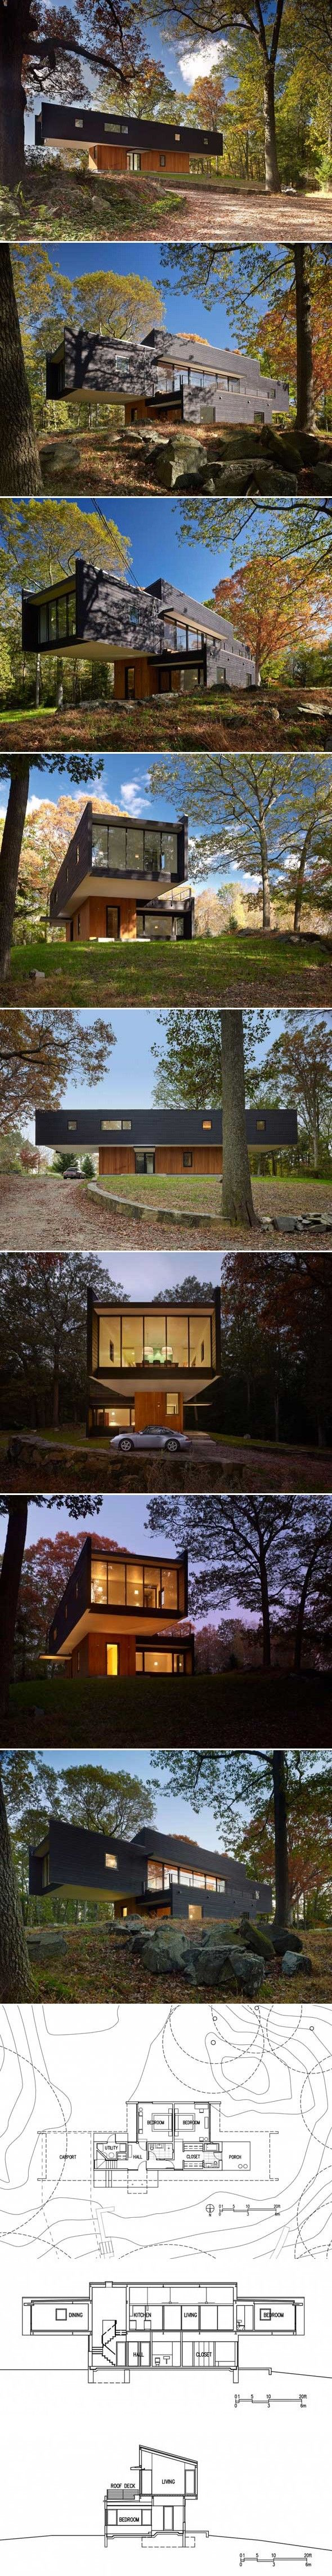 Waccabuc House par Rafael Vinoly Architects - Journal du Design